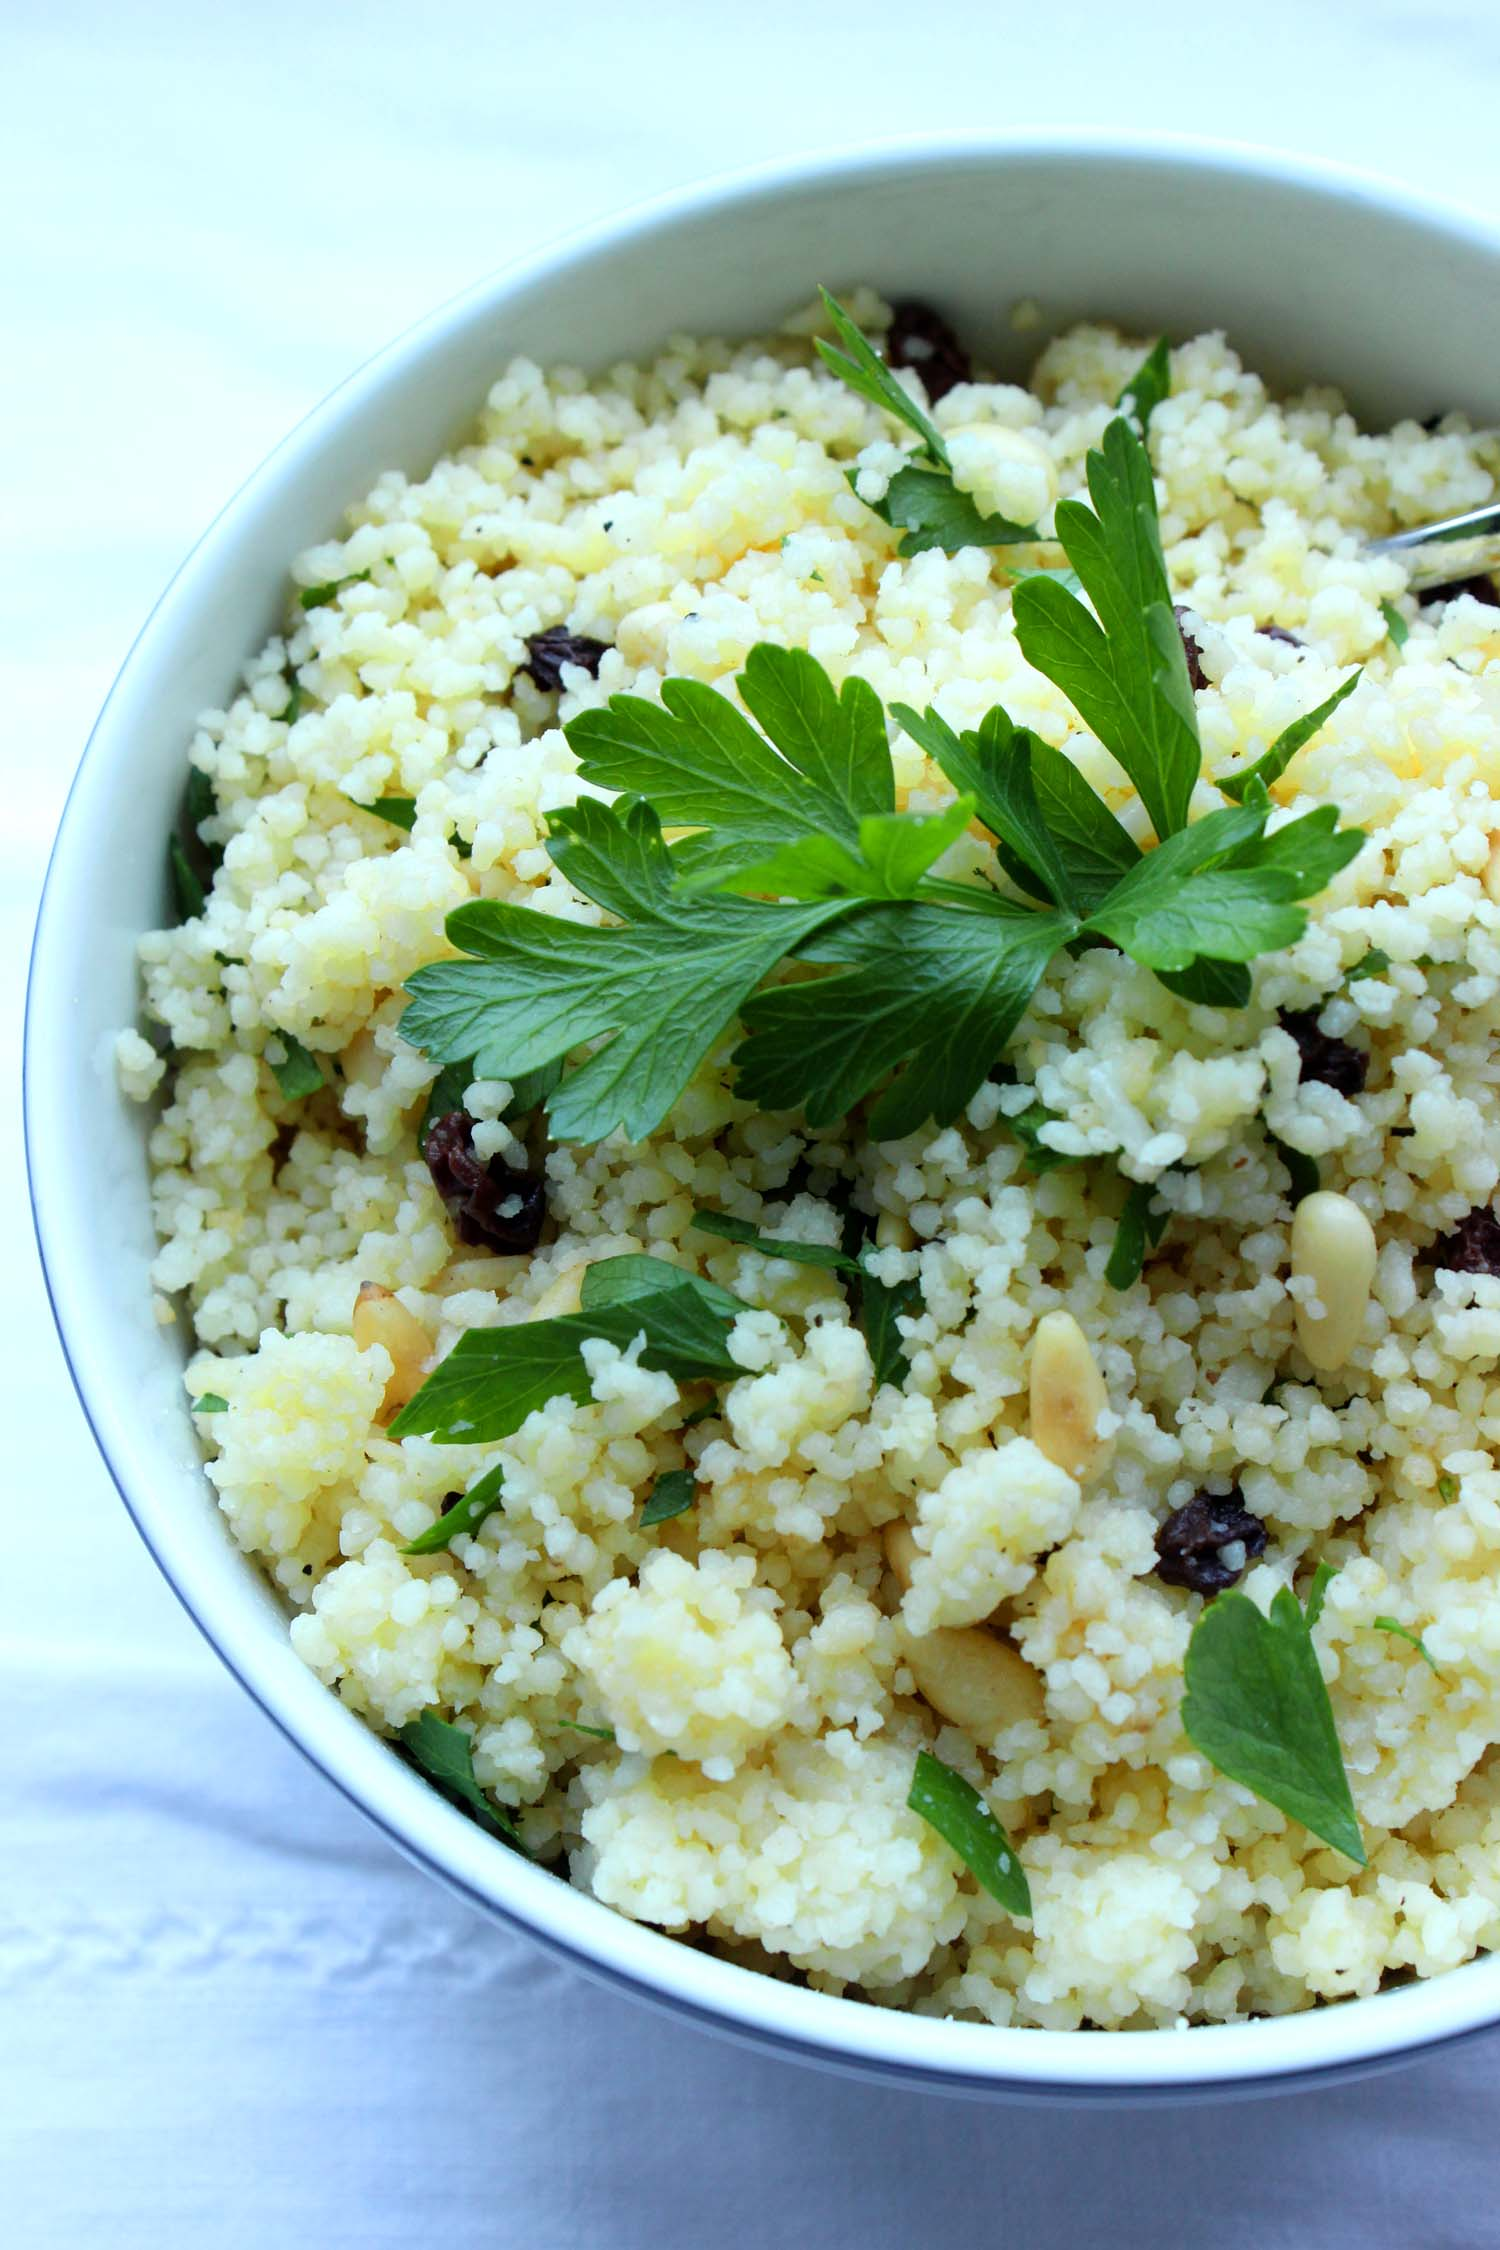 Couscous with Pine Nuts & Currants  | Image:  Laura Messersmith